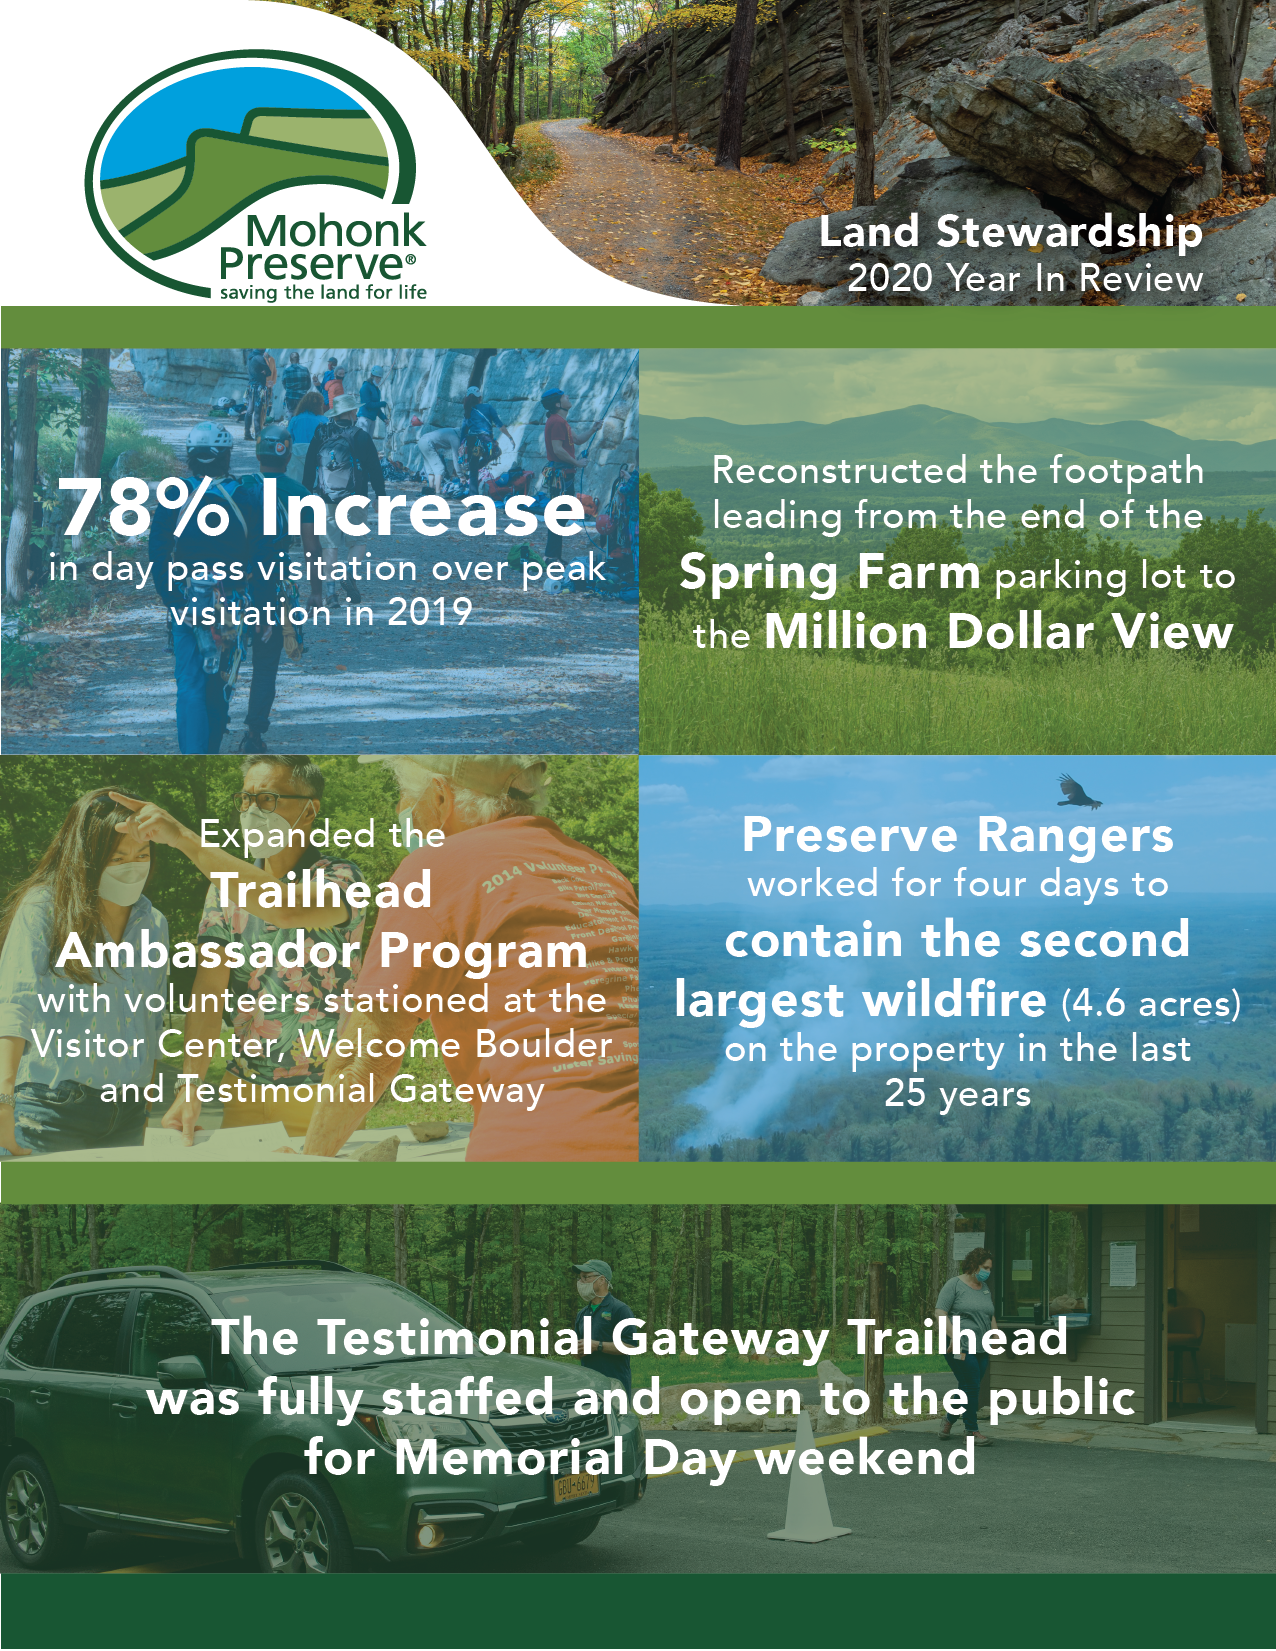 Land Stewardship 2020 Year In Review; 78% increase in day pass visitation over peak visitation in 2019; Reconstructed the footpath leading from the end of Spring Farm Parking Lot to the Million Dollar View; Expanded the Trailhead Ambassador Program with volunteers stationed at the Visitor Center, Welcome Boulder and Testimonial Gateway; Preserve Rangers worked for four days to contain the second largest wildfire on the property in 25 years; The Testimonial Gateway Trailhead was fully staffed and open to the public for Memorial Day weekend.